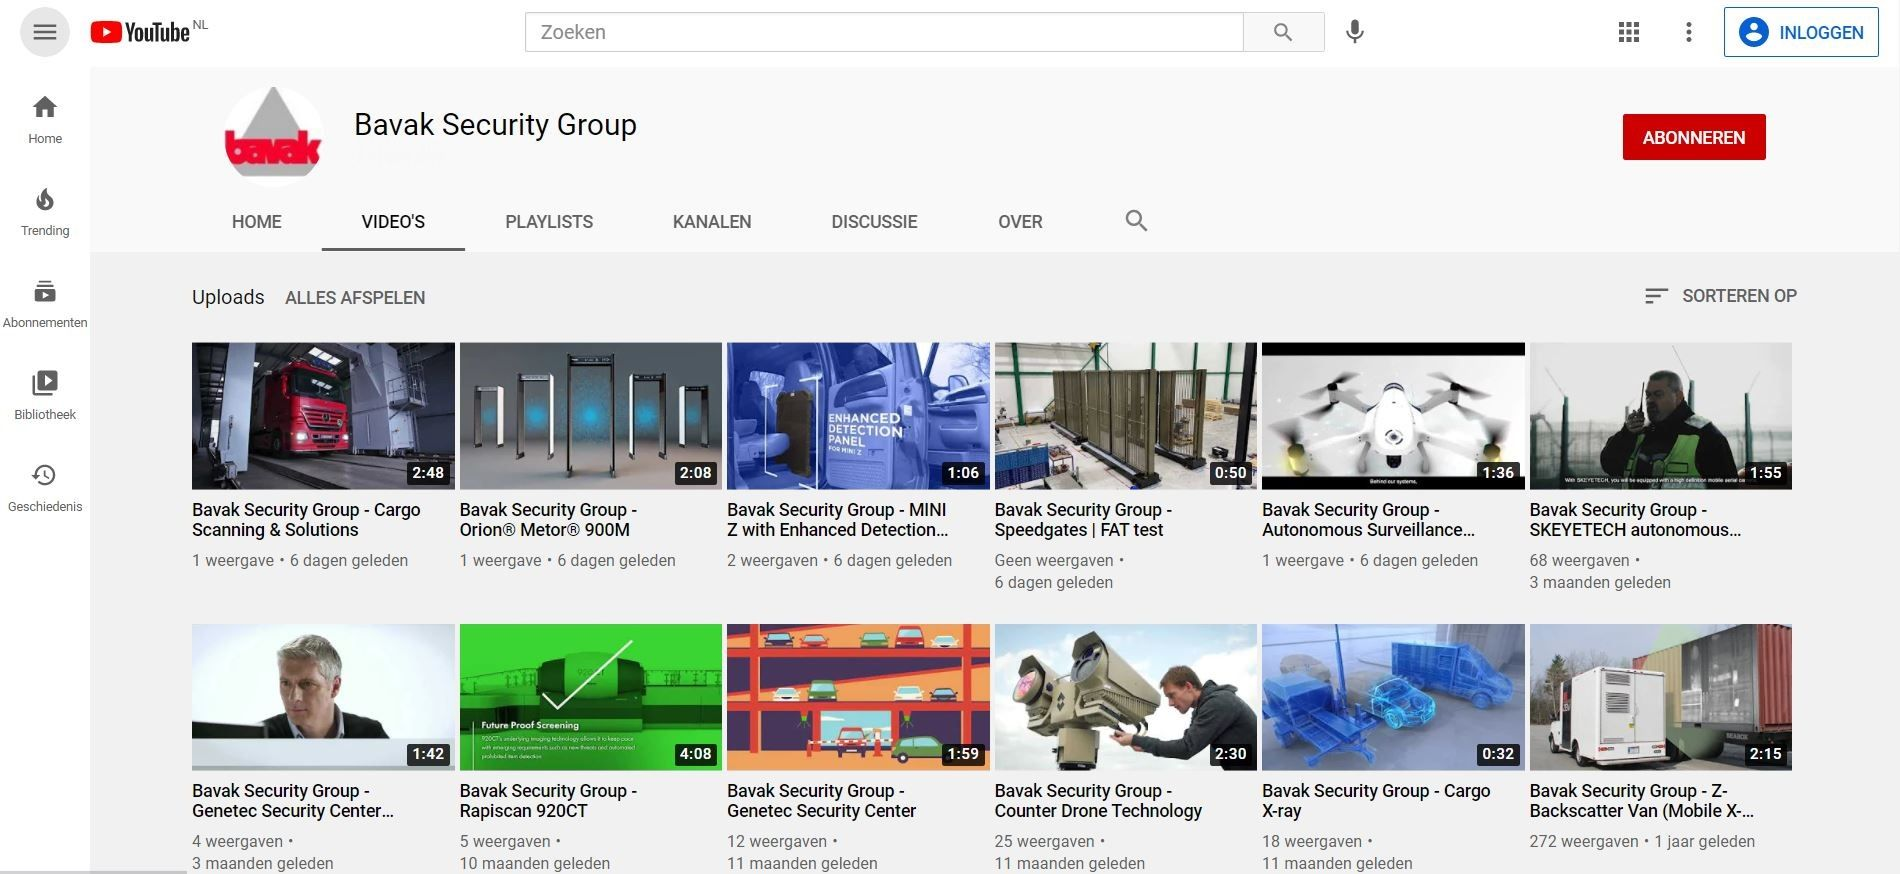 Bavak Security Group op YouTube